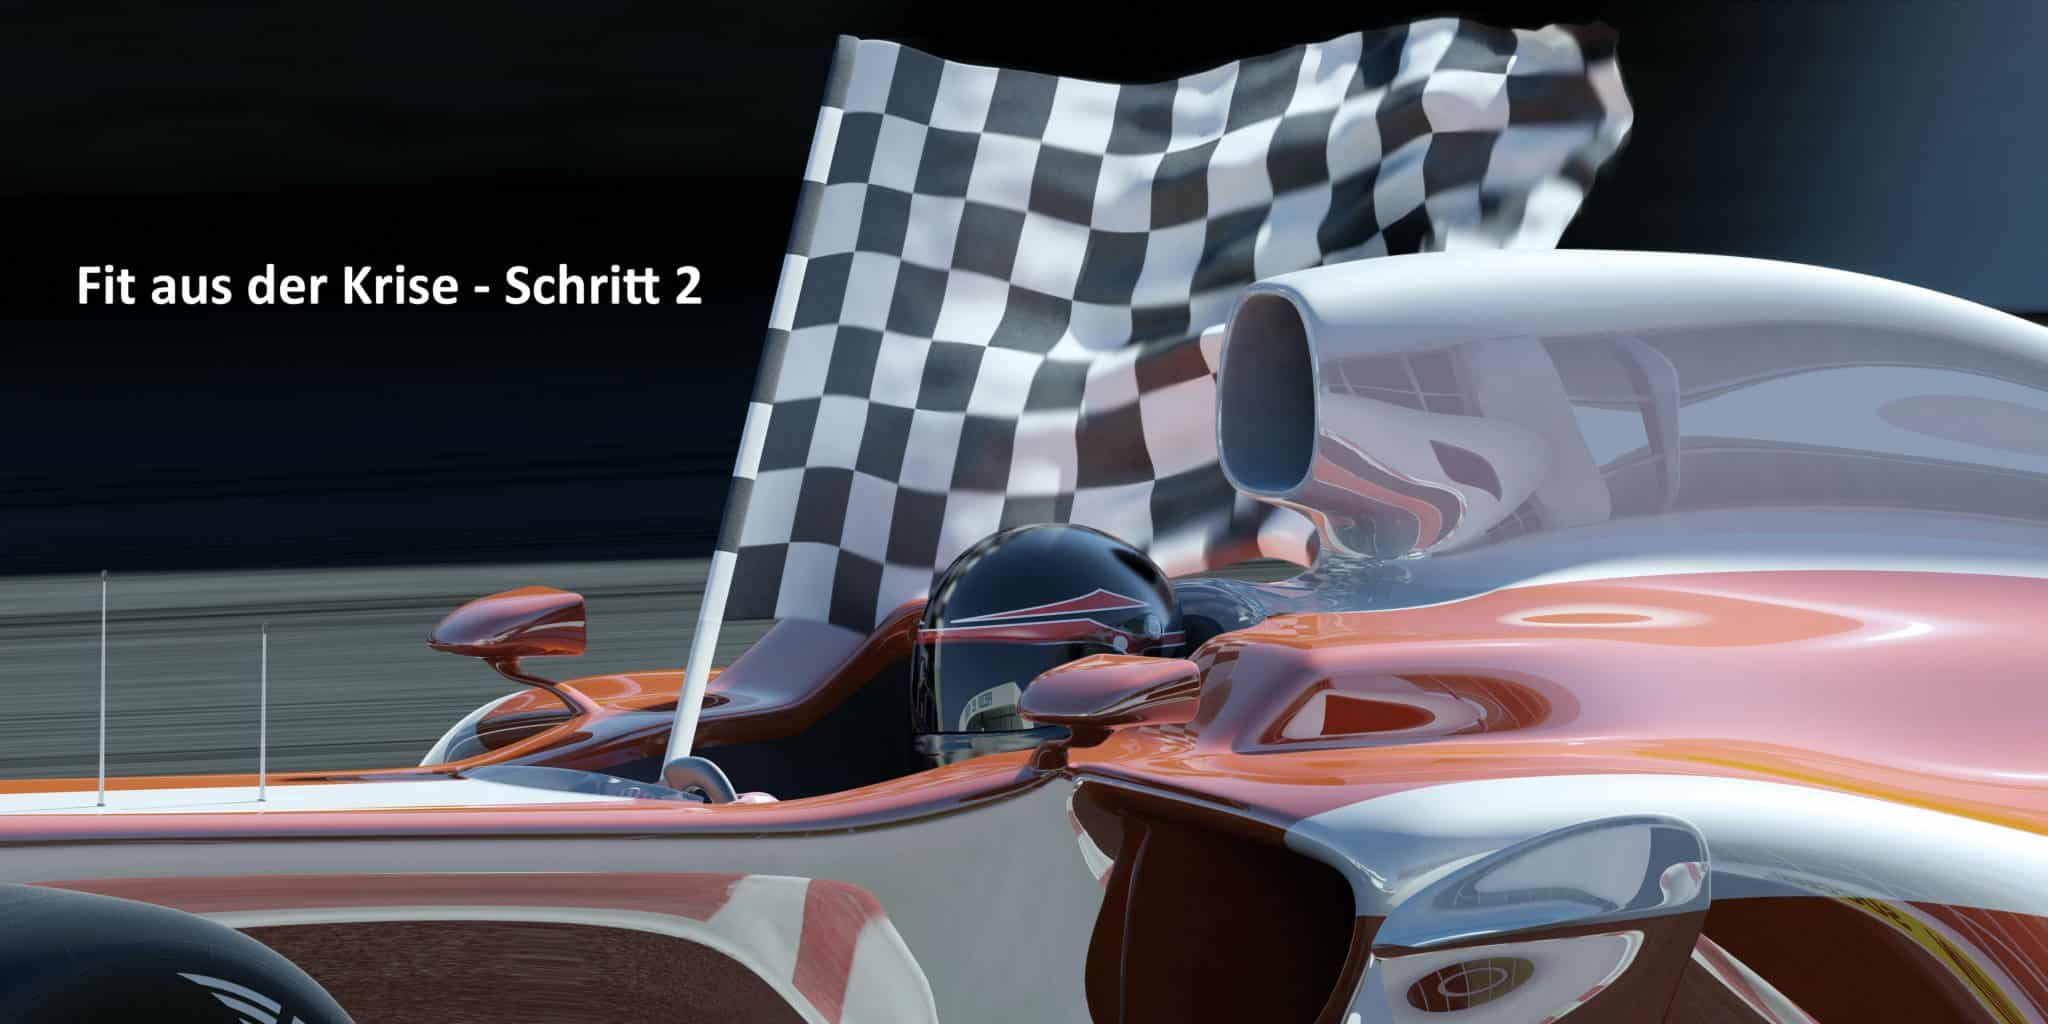 Close view of a formula one car on a race track with the driver carrying a winning checkered flag. Modelling and design are my own. Very high resolution 3D render.